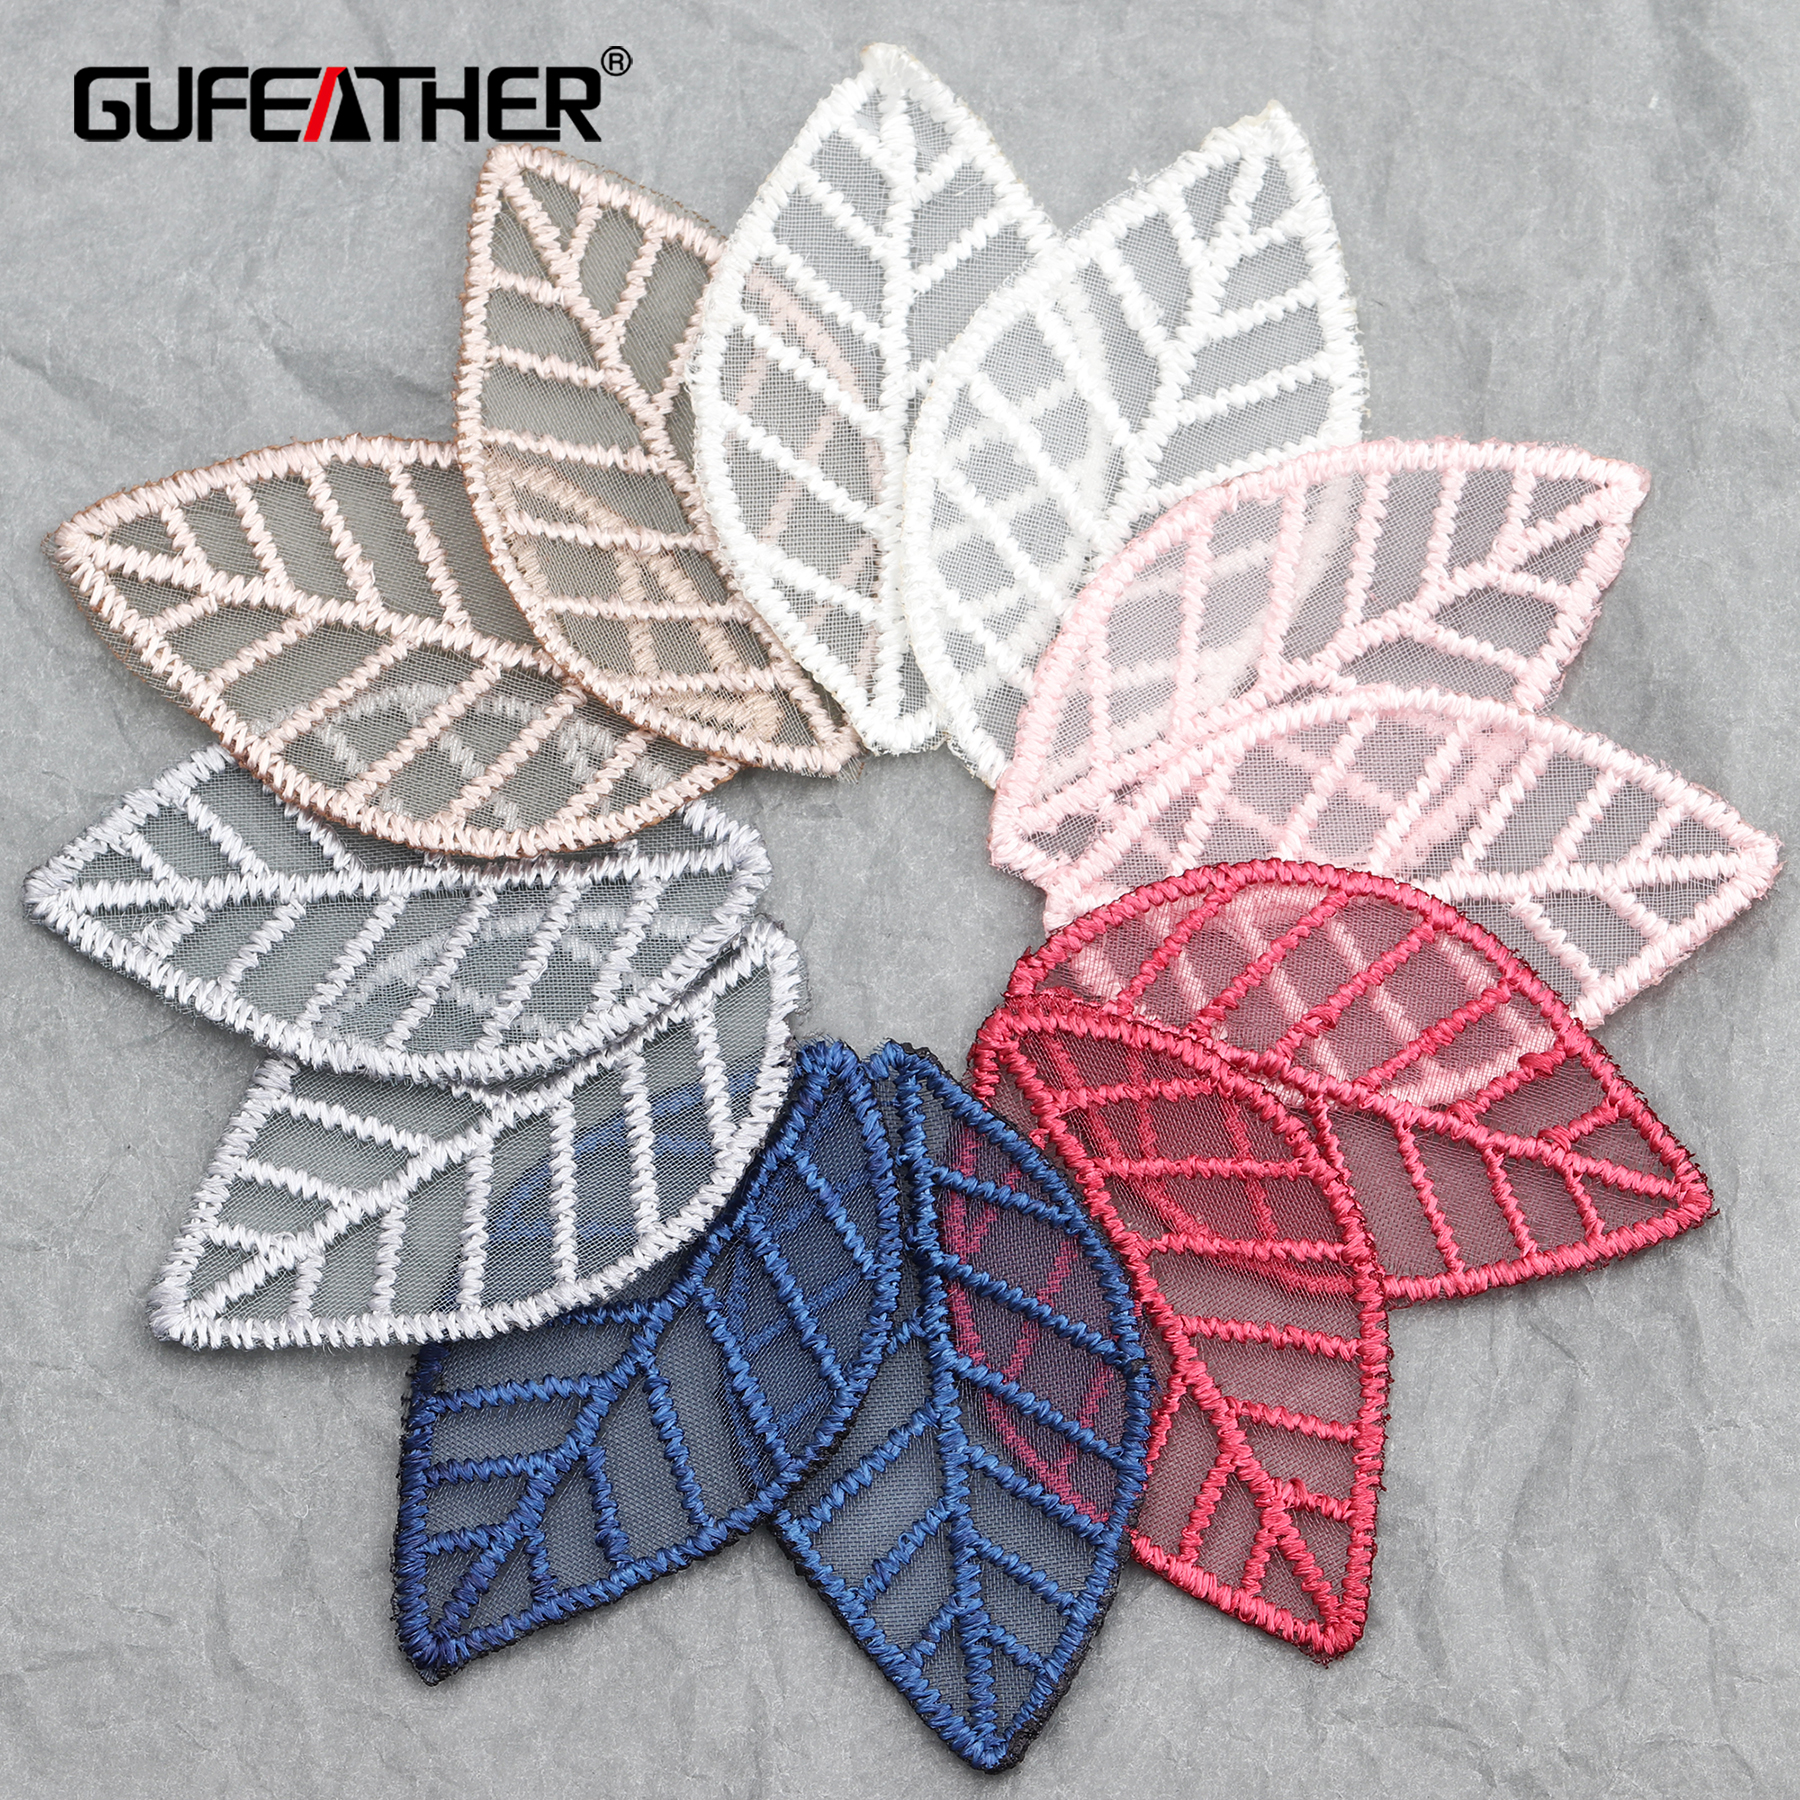 GUFEATHER L218,jewelry Accessories,diy Pendant,leaf Shape,knitted Patch,jewelry Findings,hand Made,jewelry Making,20pcs/lot